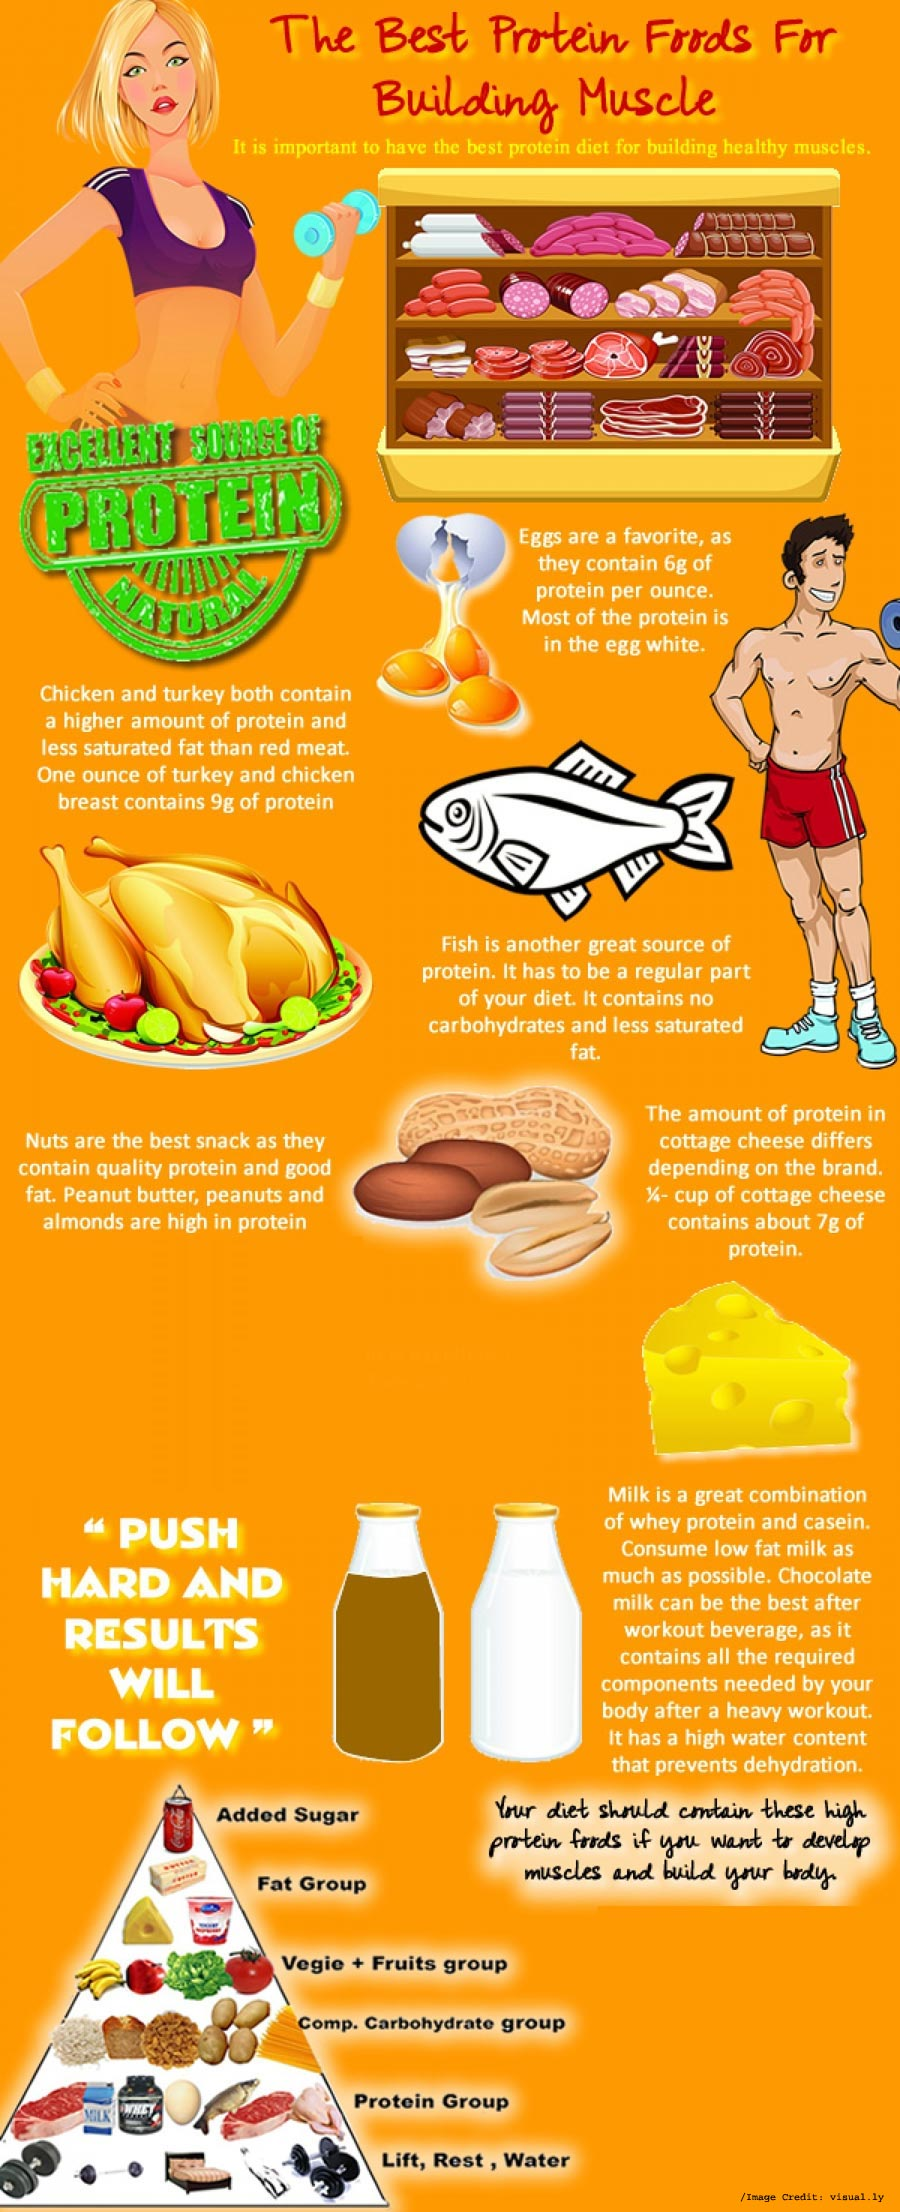 Protein Foods for Building Muscles Info